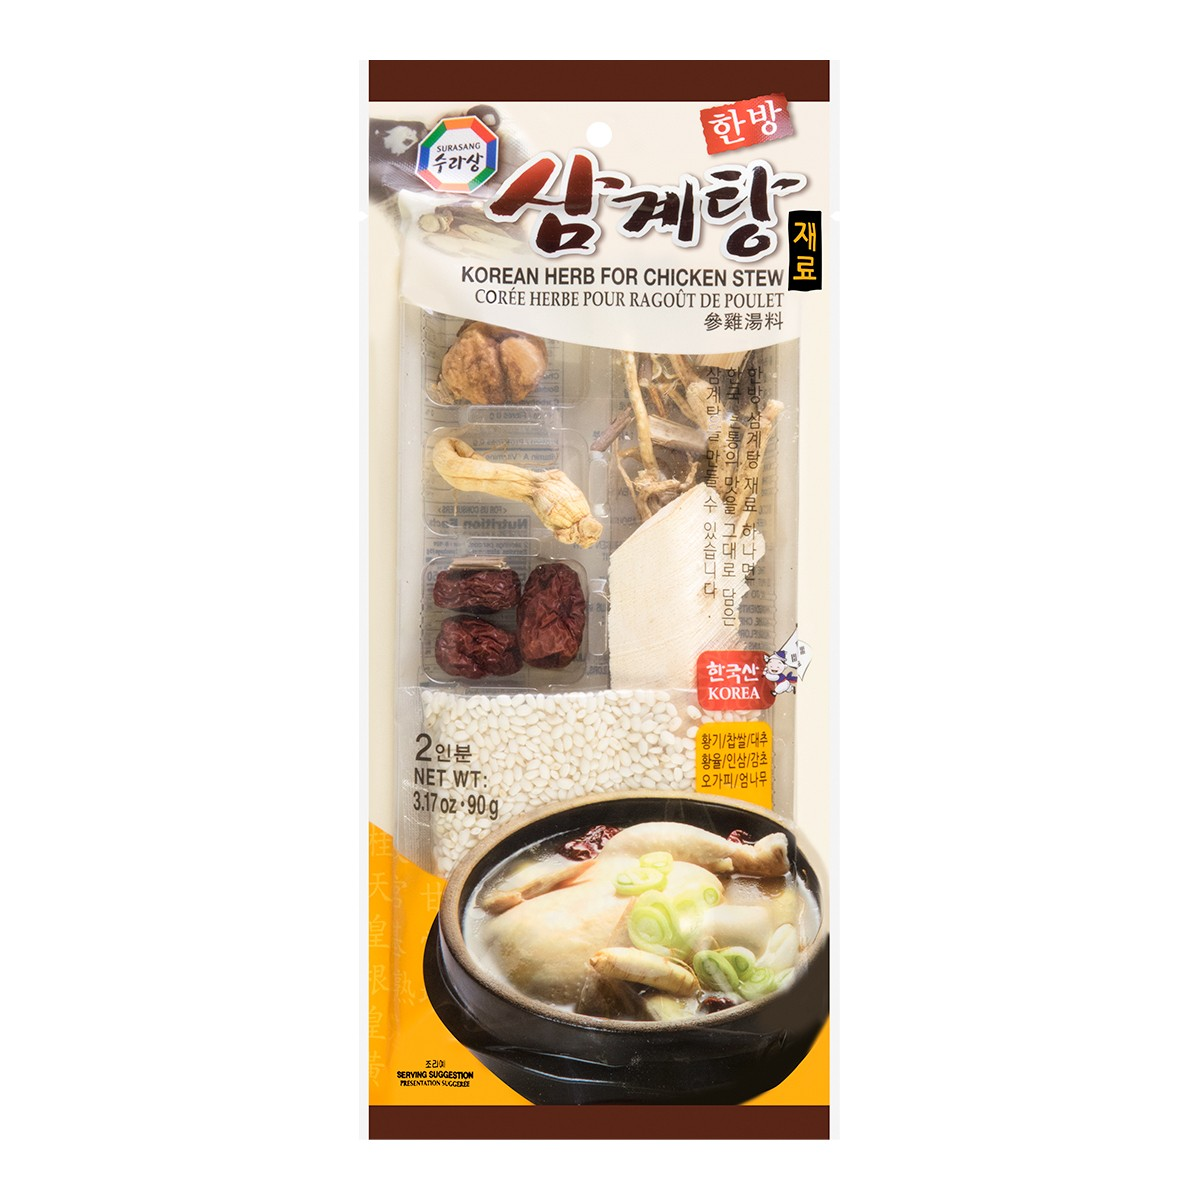 SURASANG Korean Herb For Chicken Stew 90g